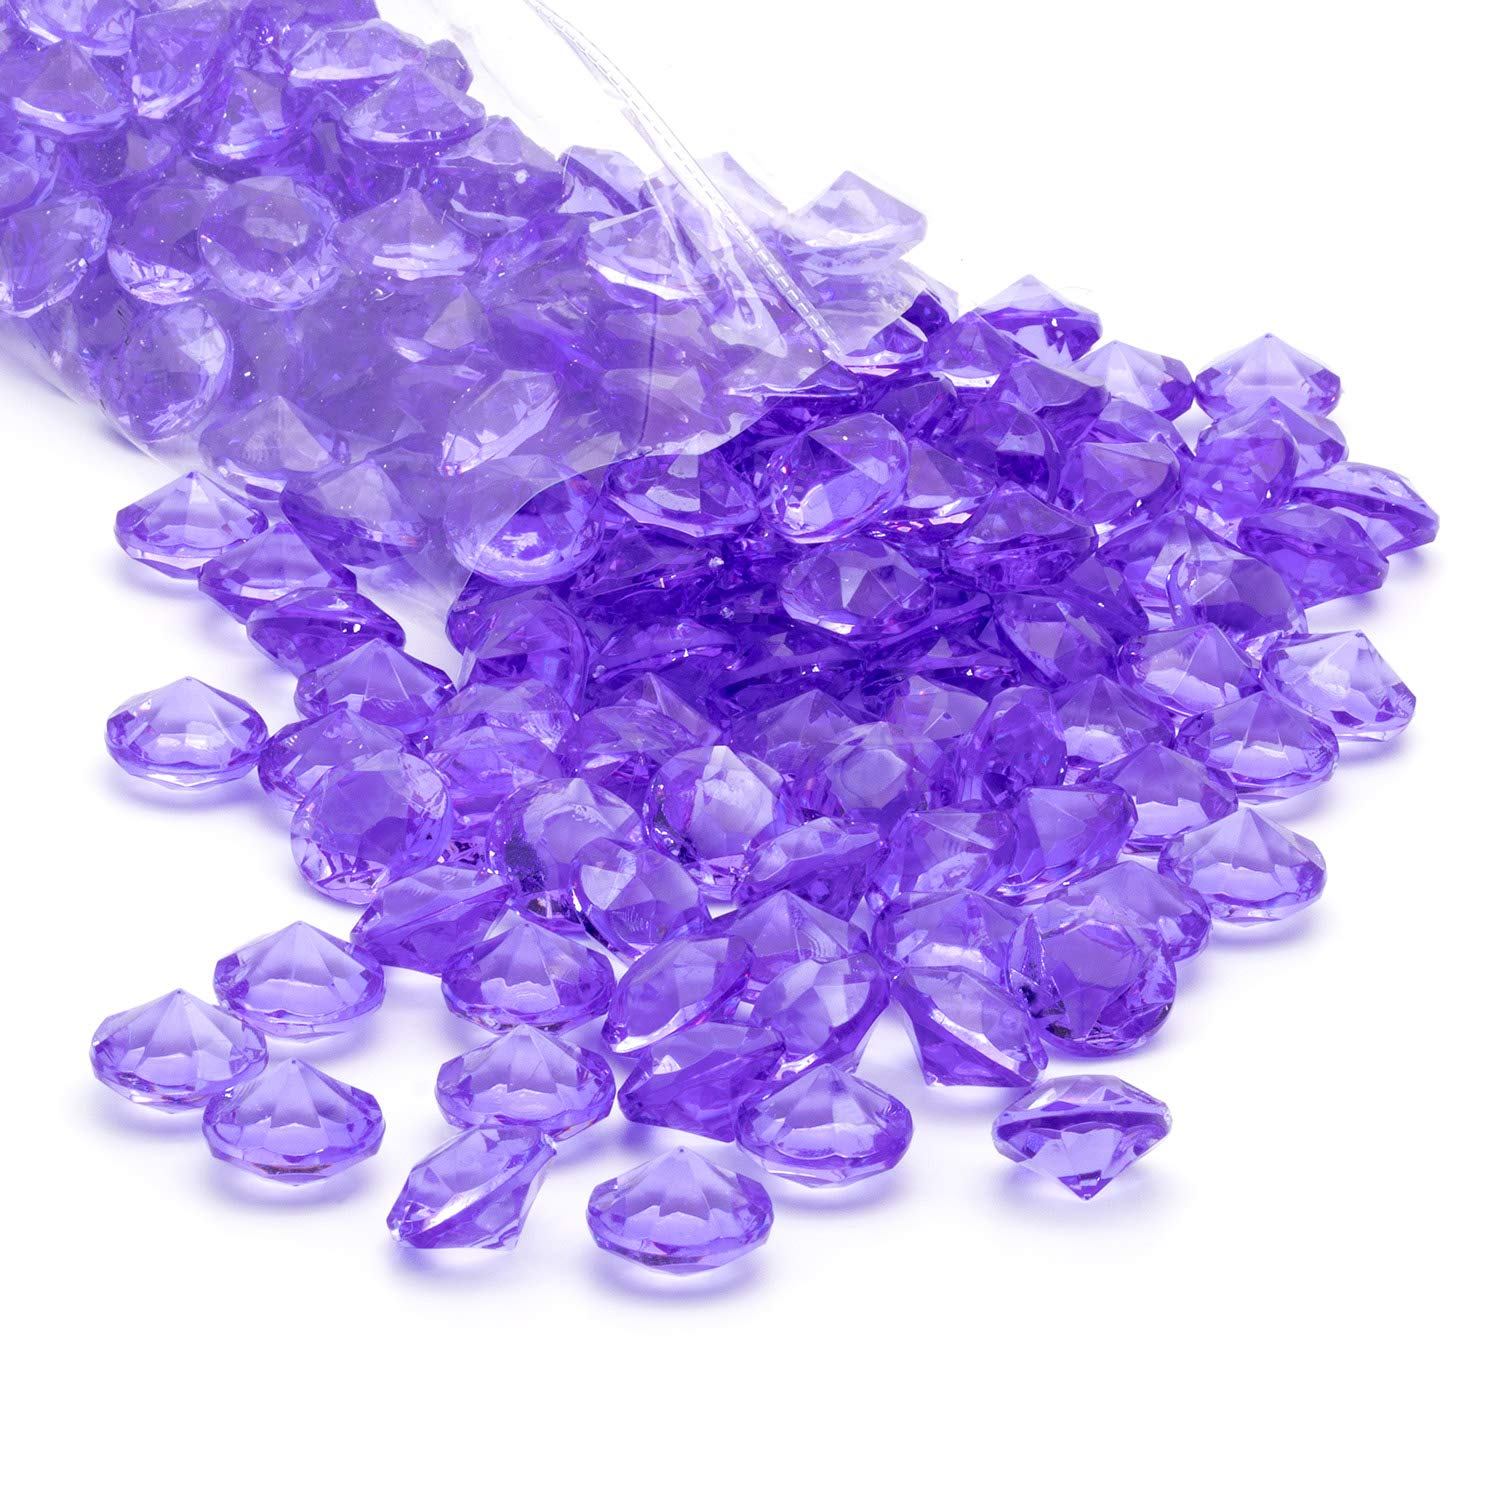 Acrylic Diamonds Gems Crystal Rocks for Vase Fillers, Party Table Scatter, Wedding, Photography, Party Decoration, Crafts by Royal Imports, 3 LBS (Approx 440-460 gems) - Purple